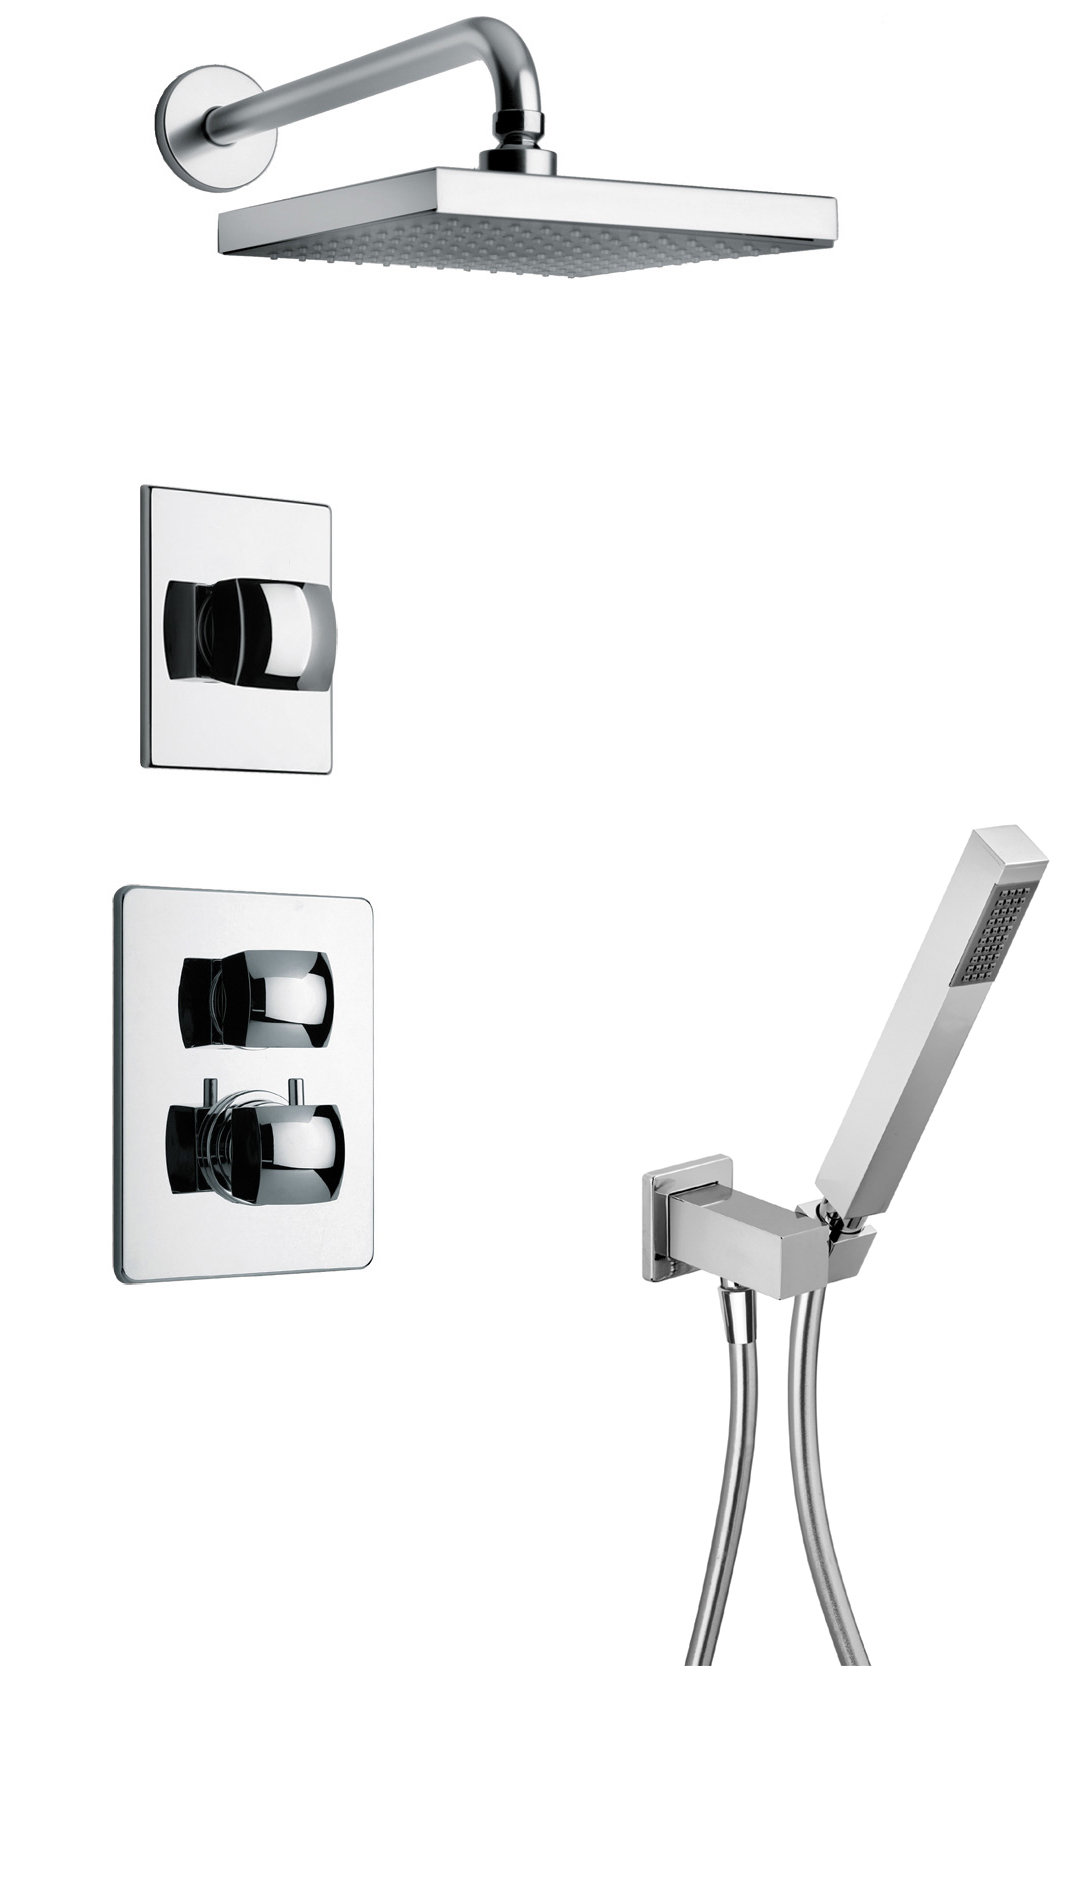 "Thermostatic Shower With 3/4"" Ceramic Disc Volume Control, 3-Way Diverter and Hand-Shower in Chrome"